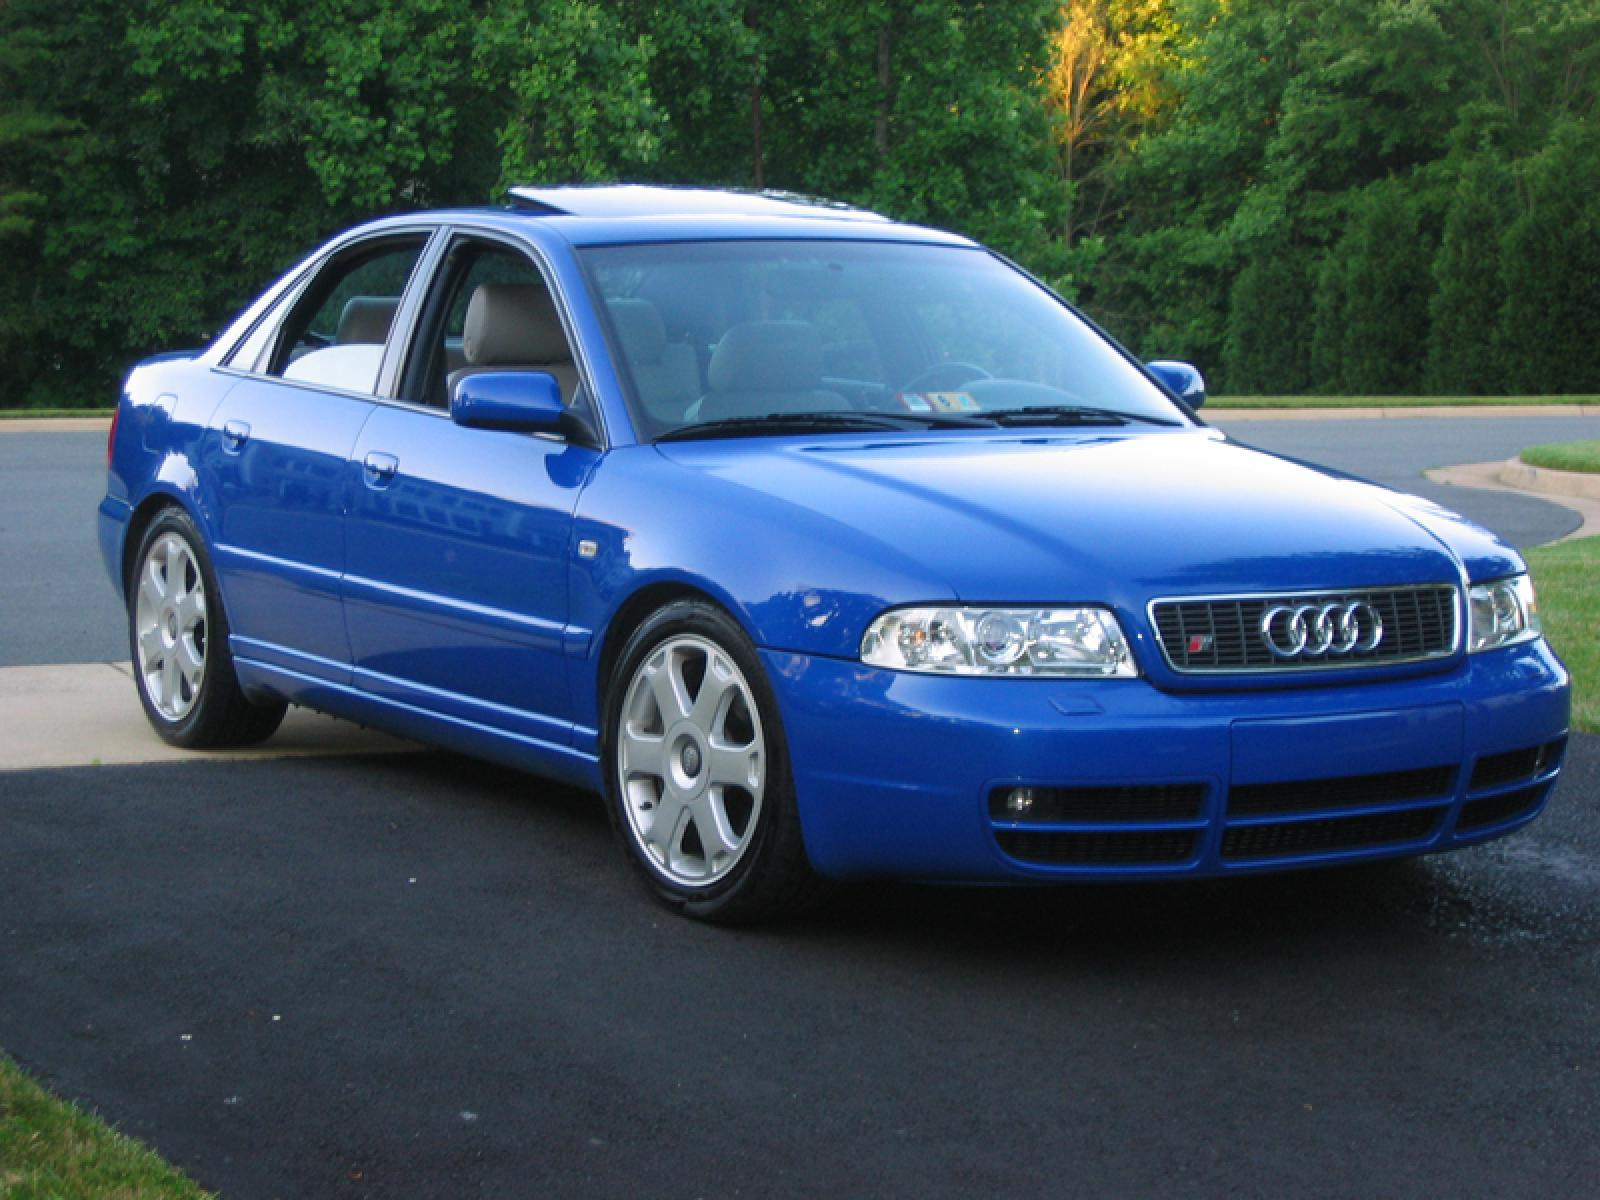 2000 Audi S4 Information And Photos Zombiedrive